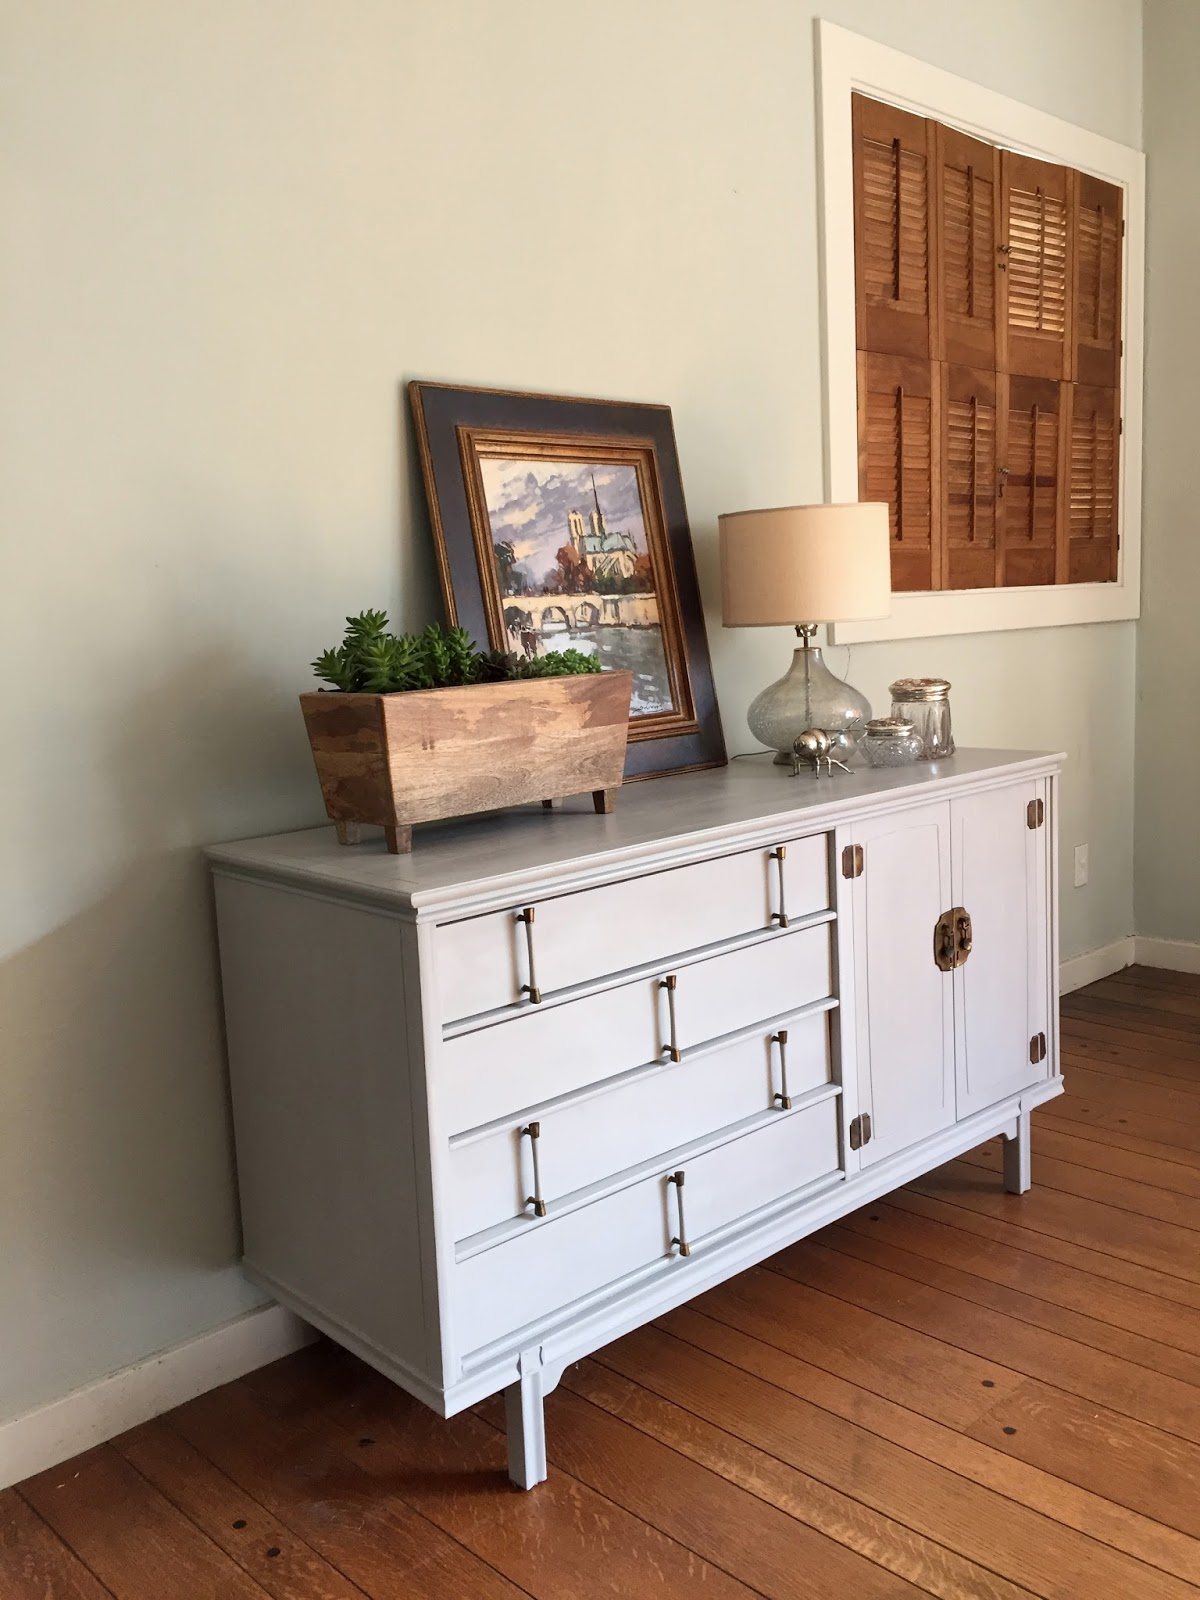 Want A Peek At The Inside, Just For Fun? I Got Some Good Shots Of How I  Paint The Inside Of A Dresser So That It Looks Clean And Tidy But I ...